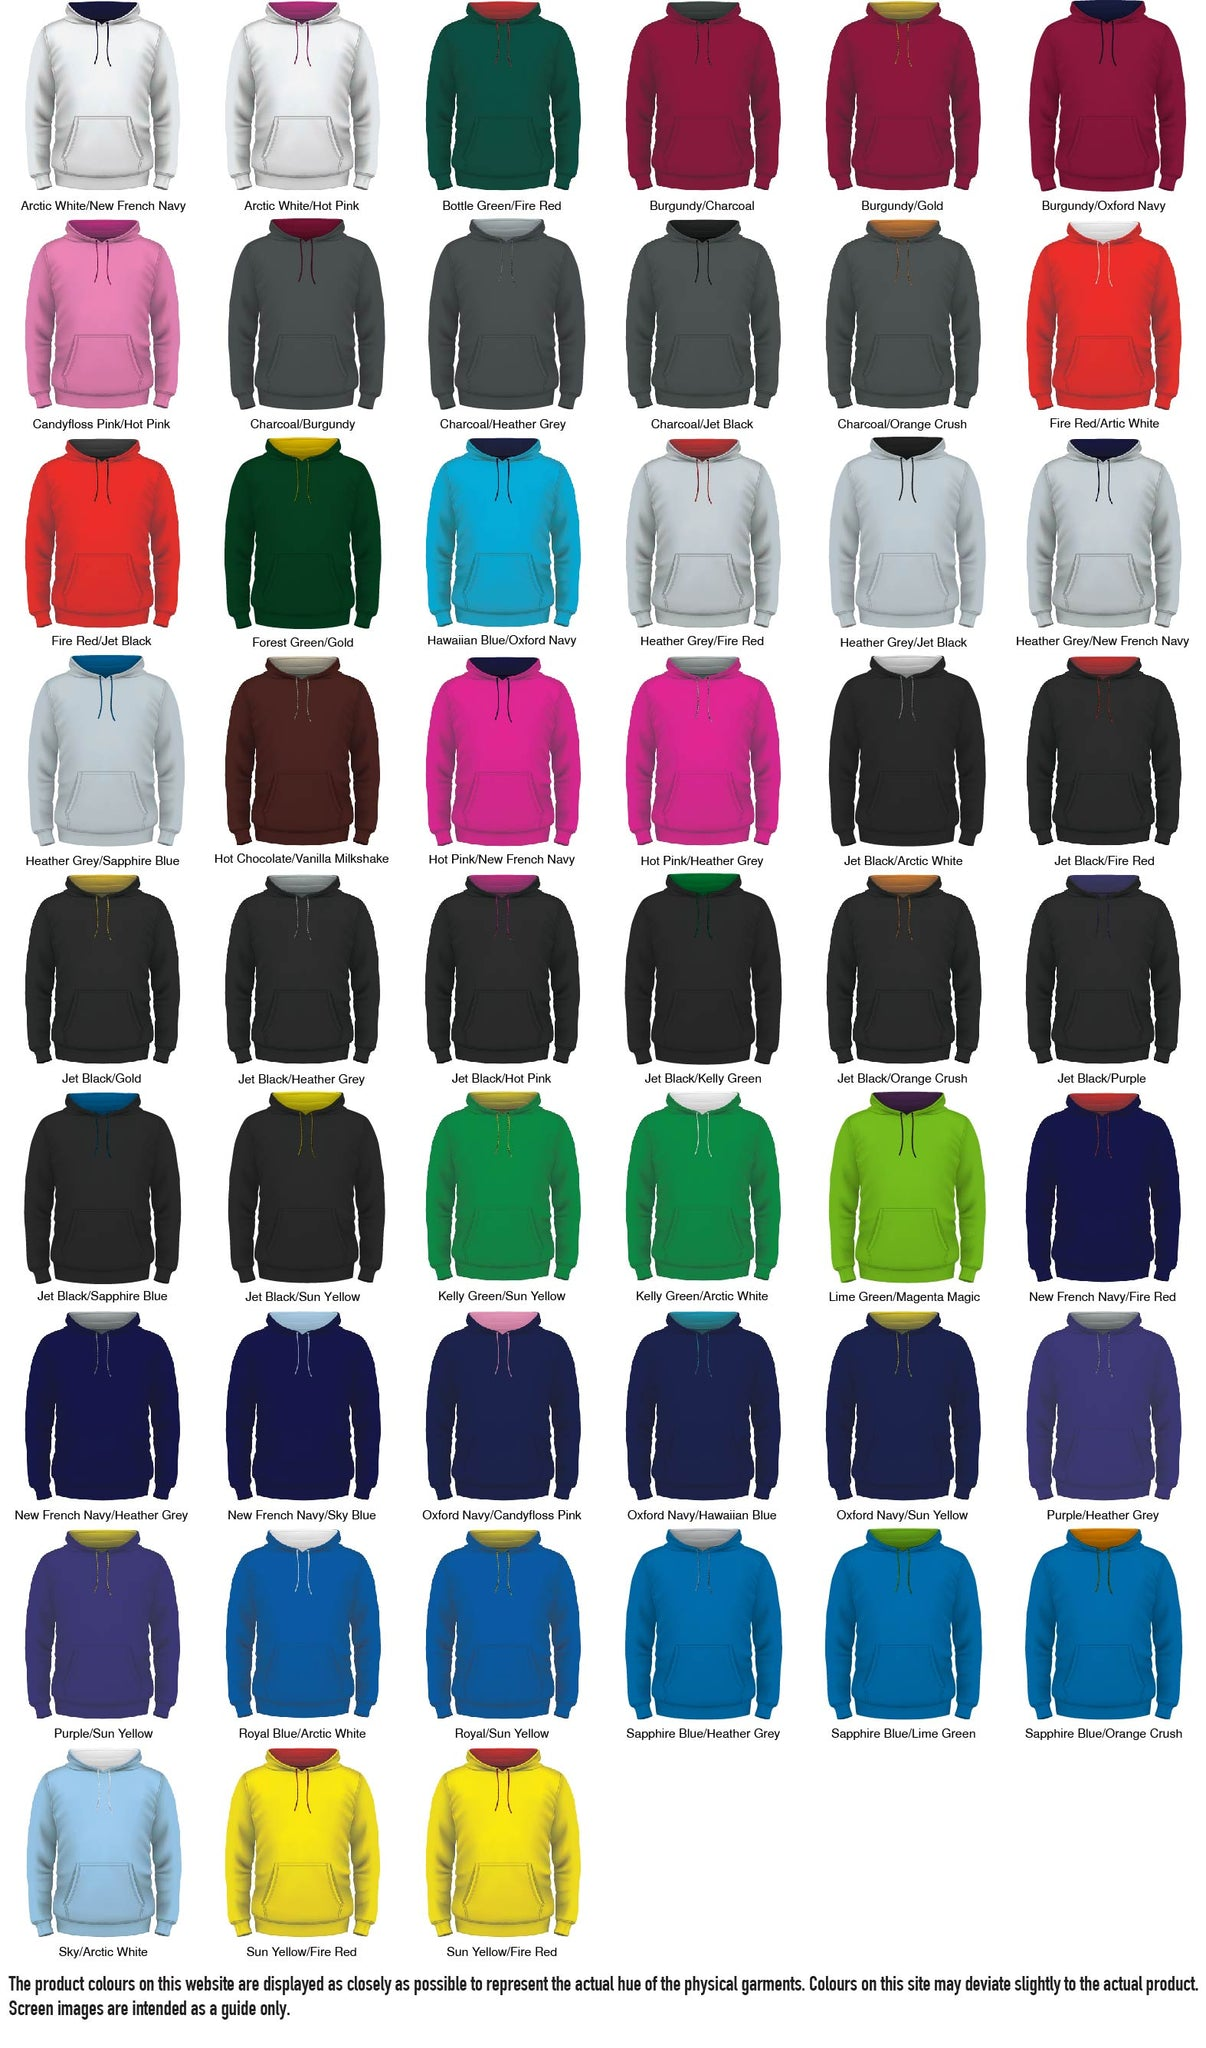 Adult hoodie Colour Options